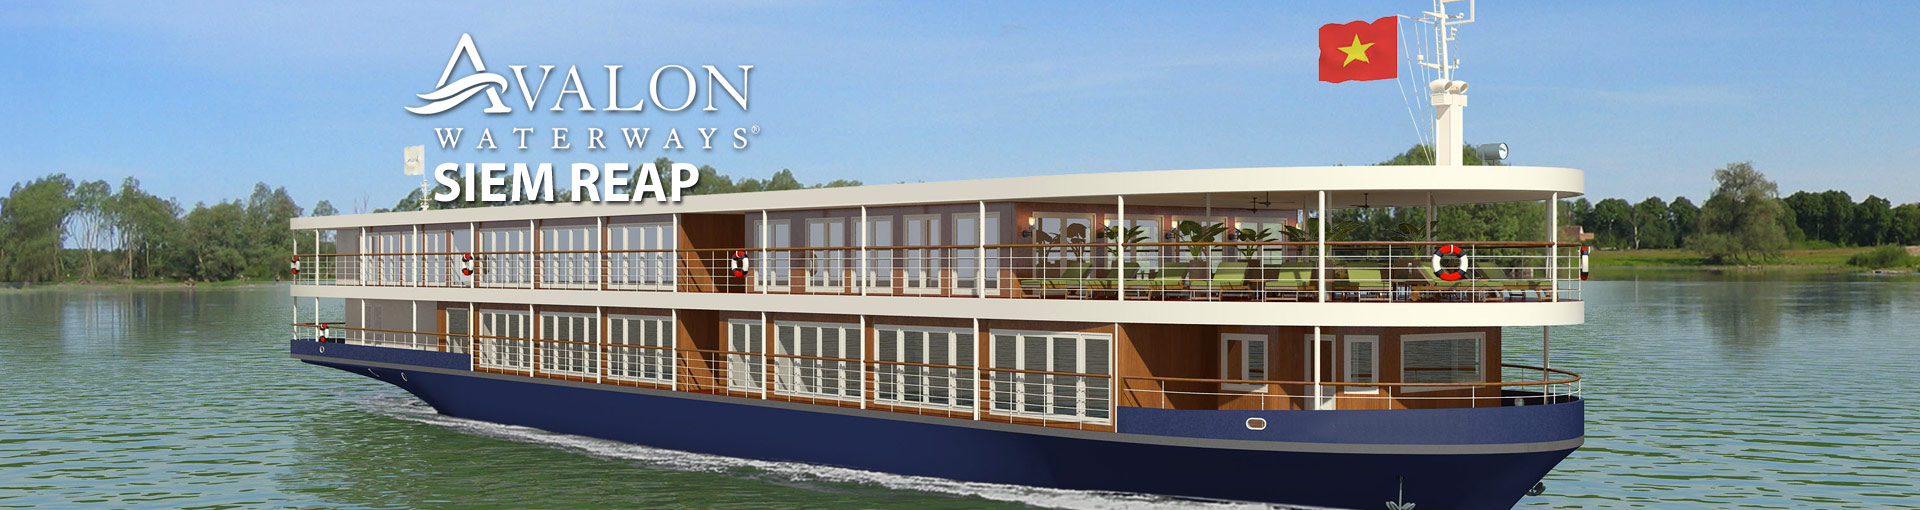 Avalon Siem Reap River Cruise Ship